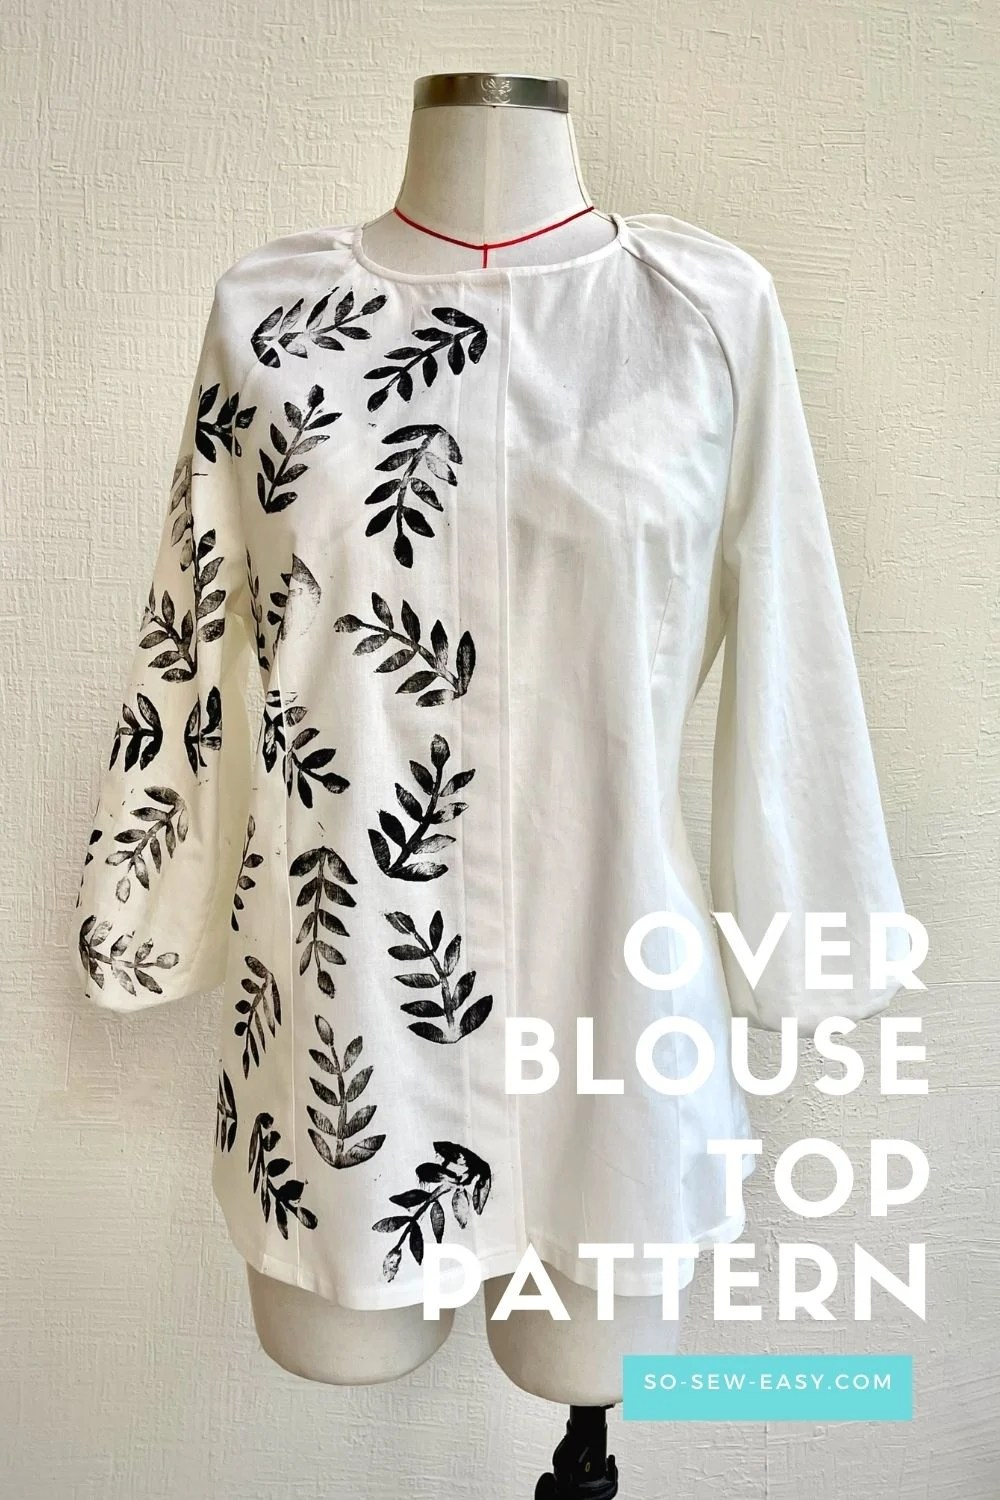 Women's Overblouse Top - Free Sewing Pattern